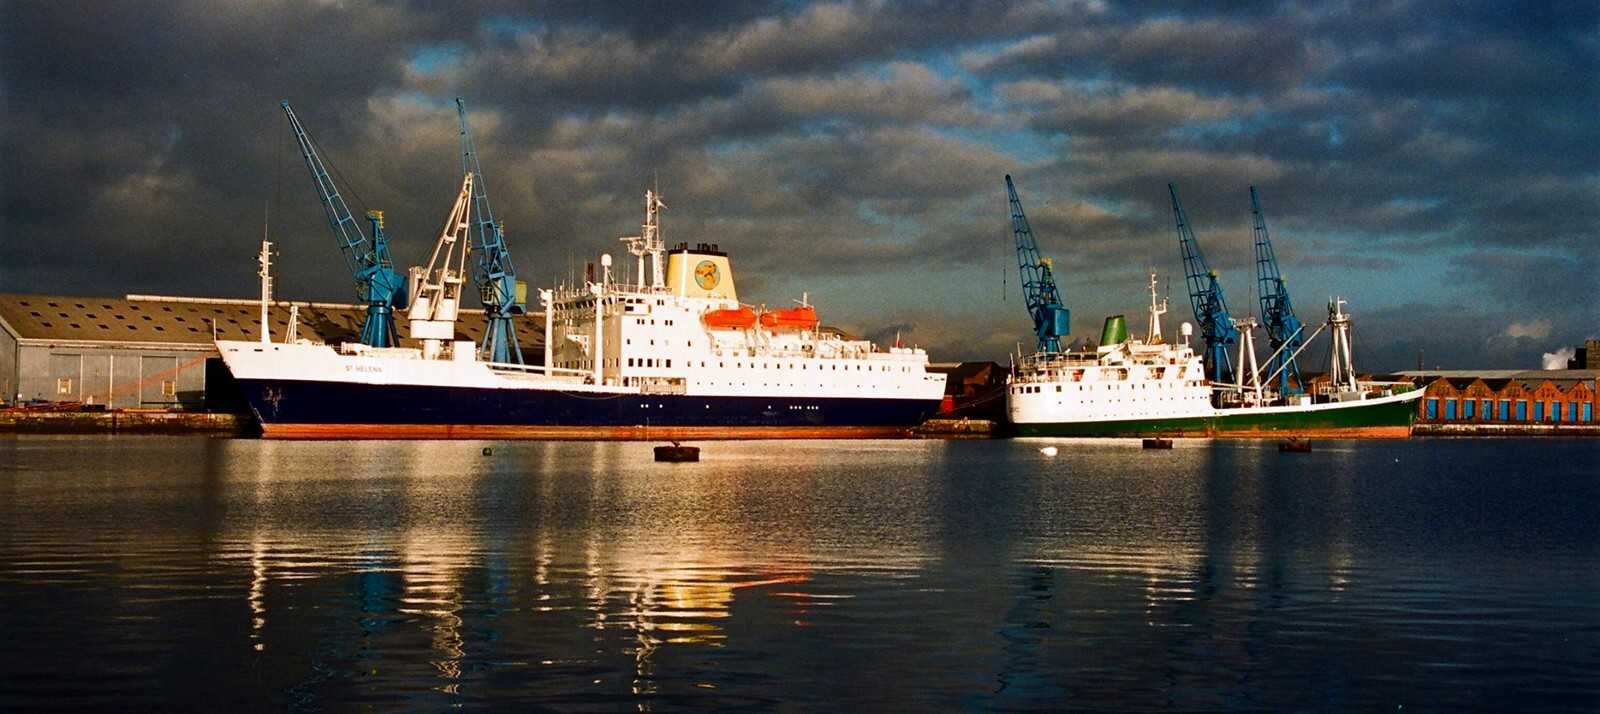 The two RMS St Helena s, together in Cardiff, 1990